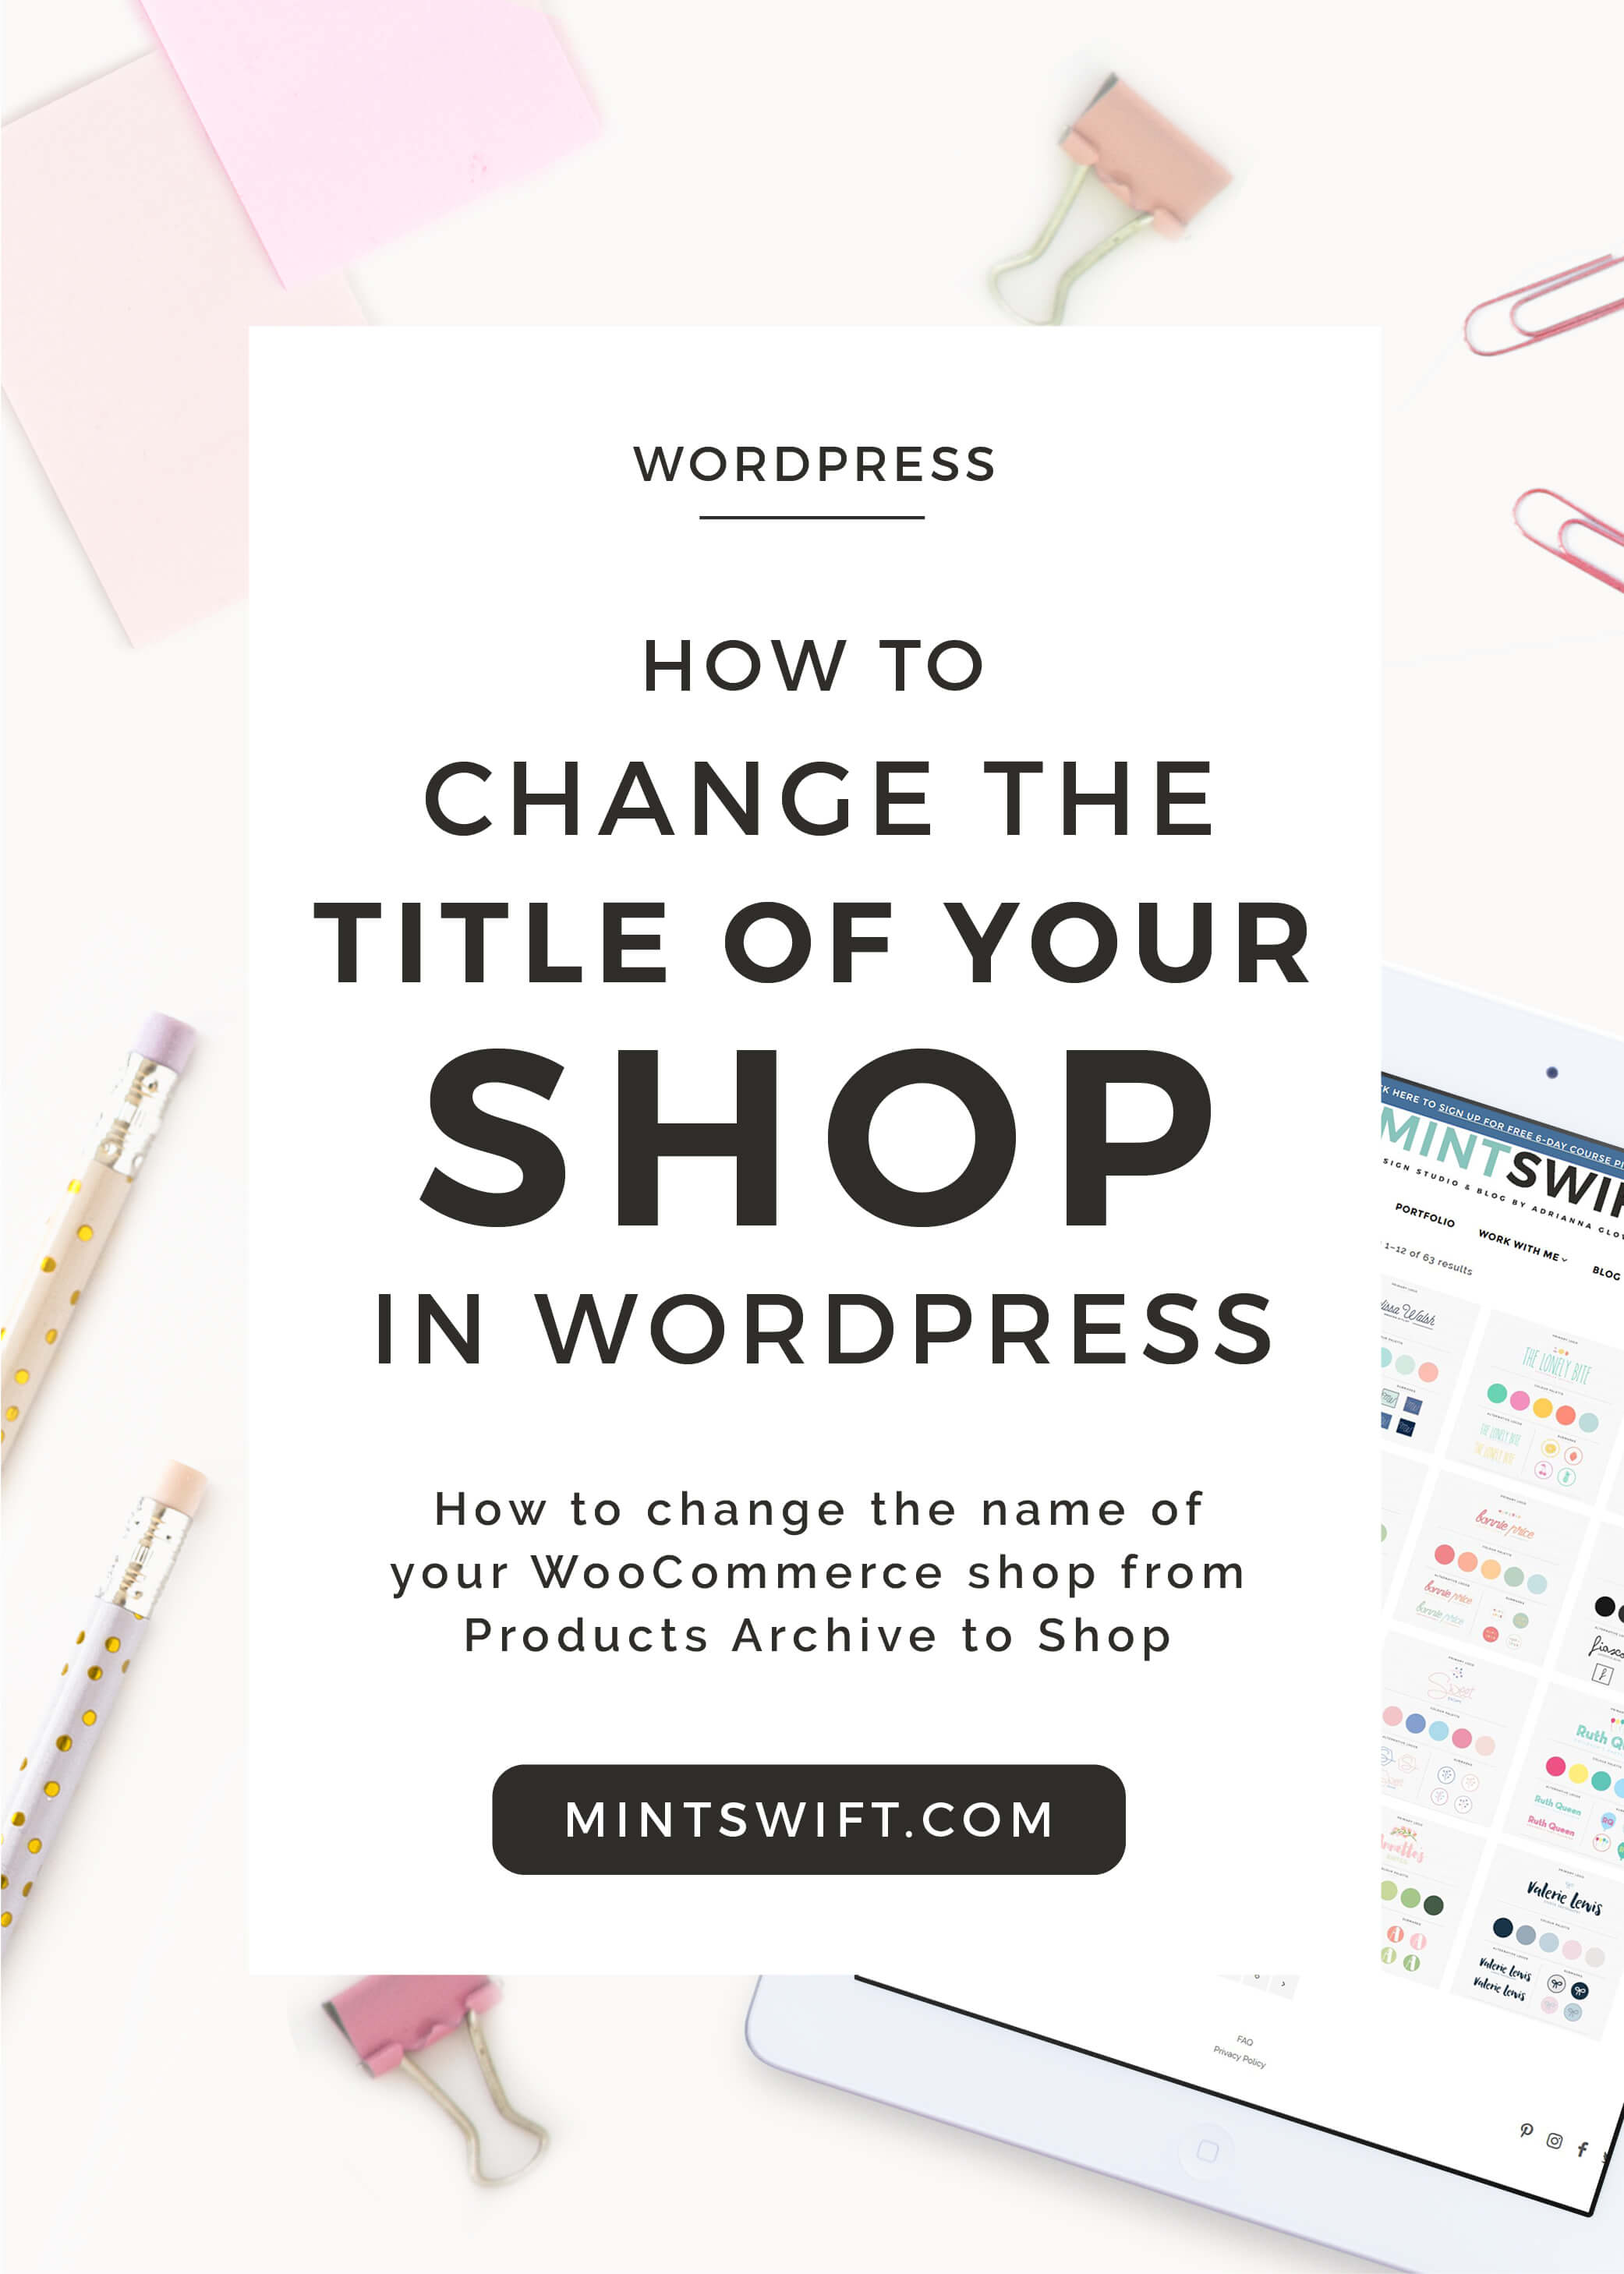 Learn how to quickly change the default WooCommerce shop title from Products Archive to Shop in WordPress using the Yoast SEO plugin.